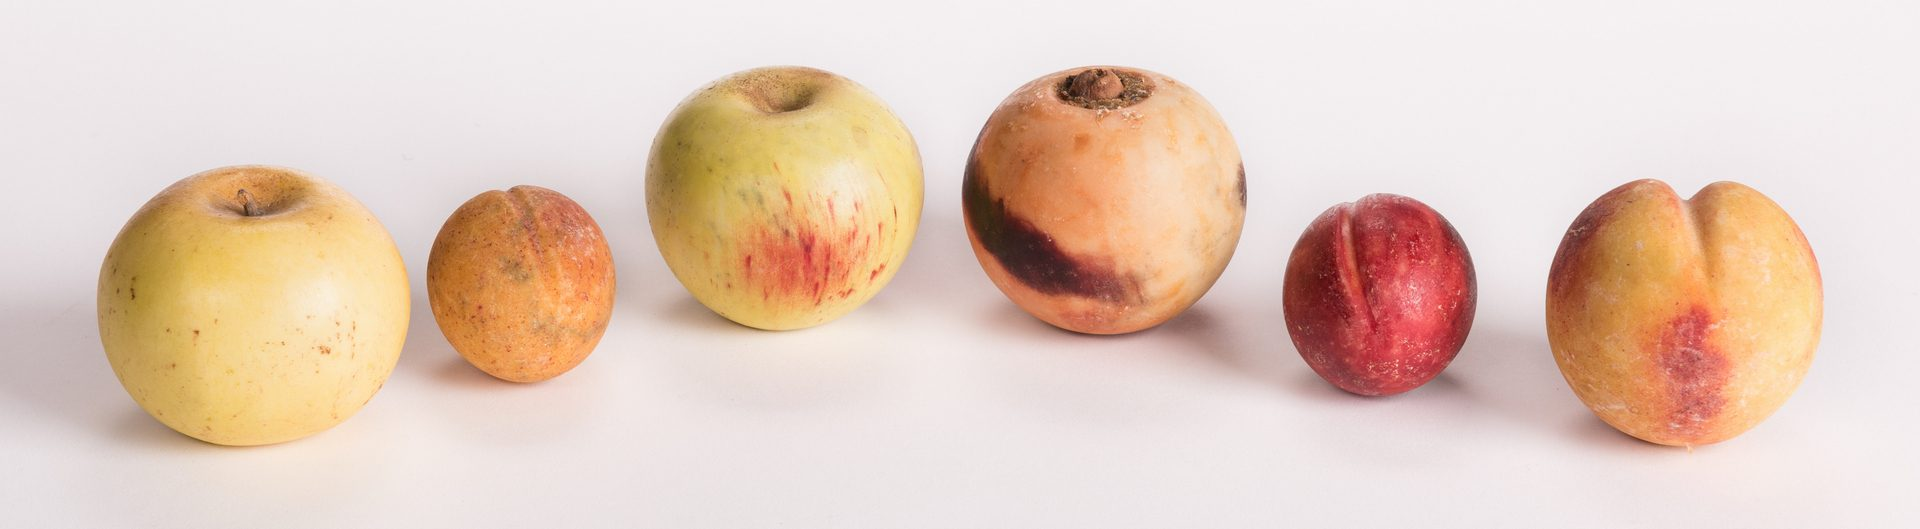 Lot 91: Group of Stone Fruit, 13 pieces